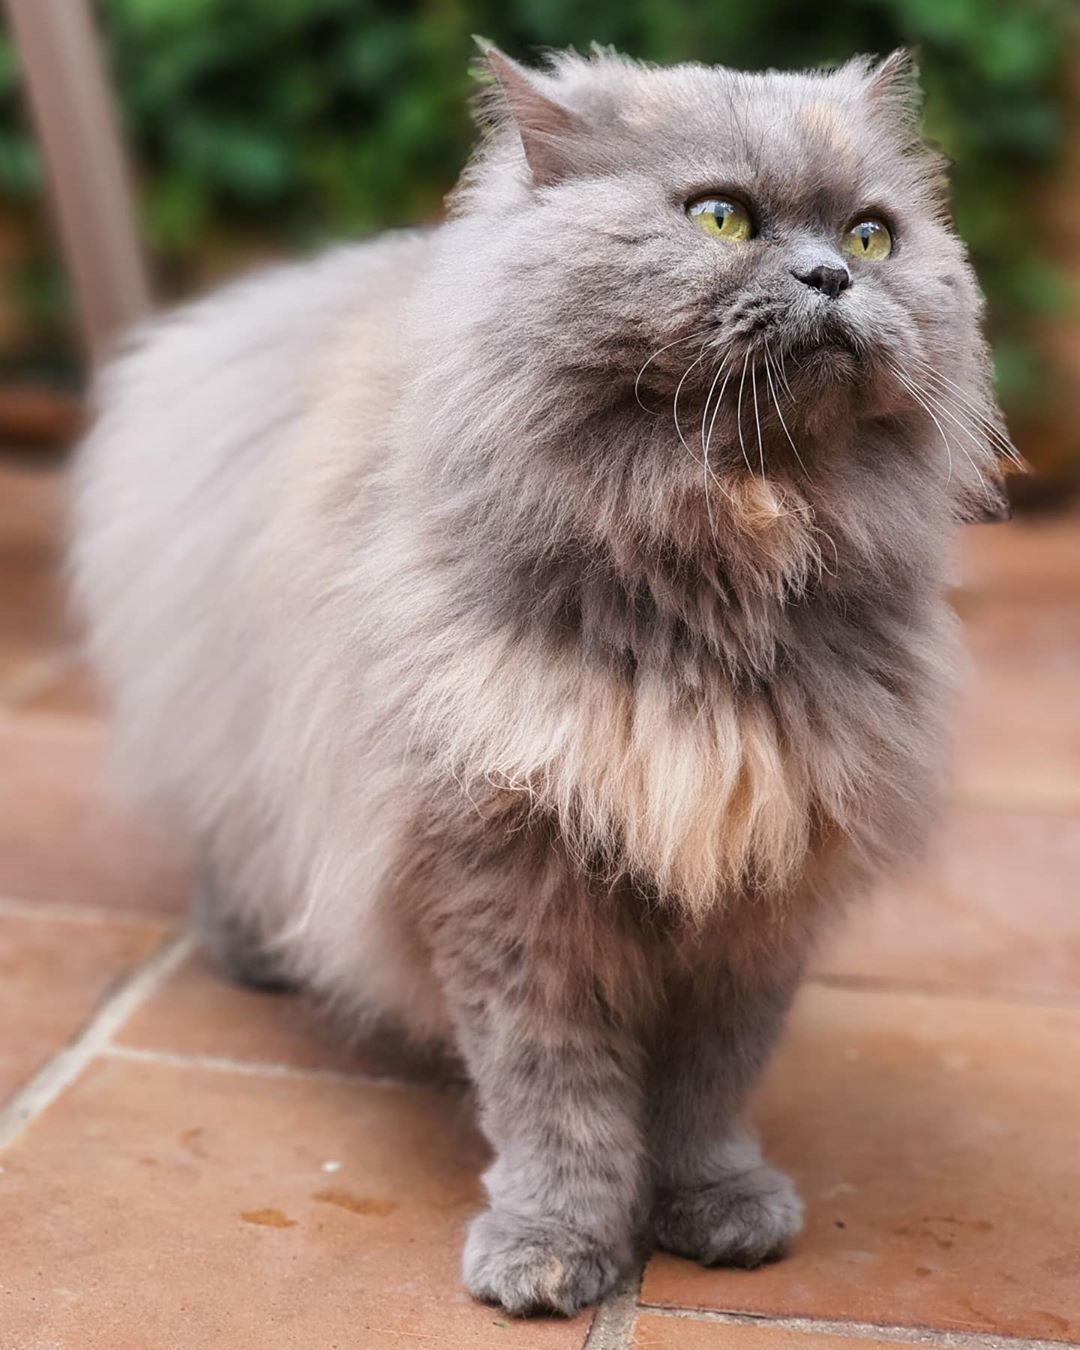 Cute is Not Enough  Cute and Funny Pets Doing Funny Things - Cats & Dogs  Lana  #cats #cat #persiancat #gato #gatti #kittens